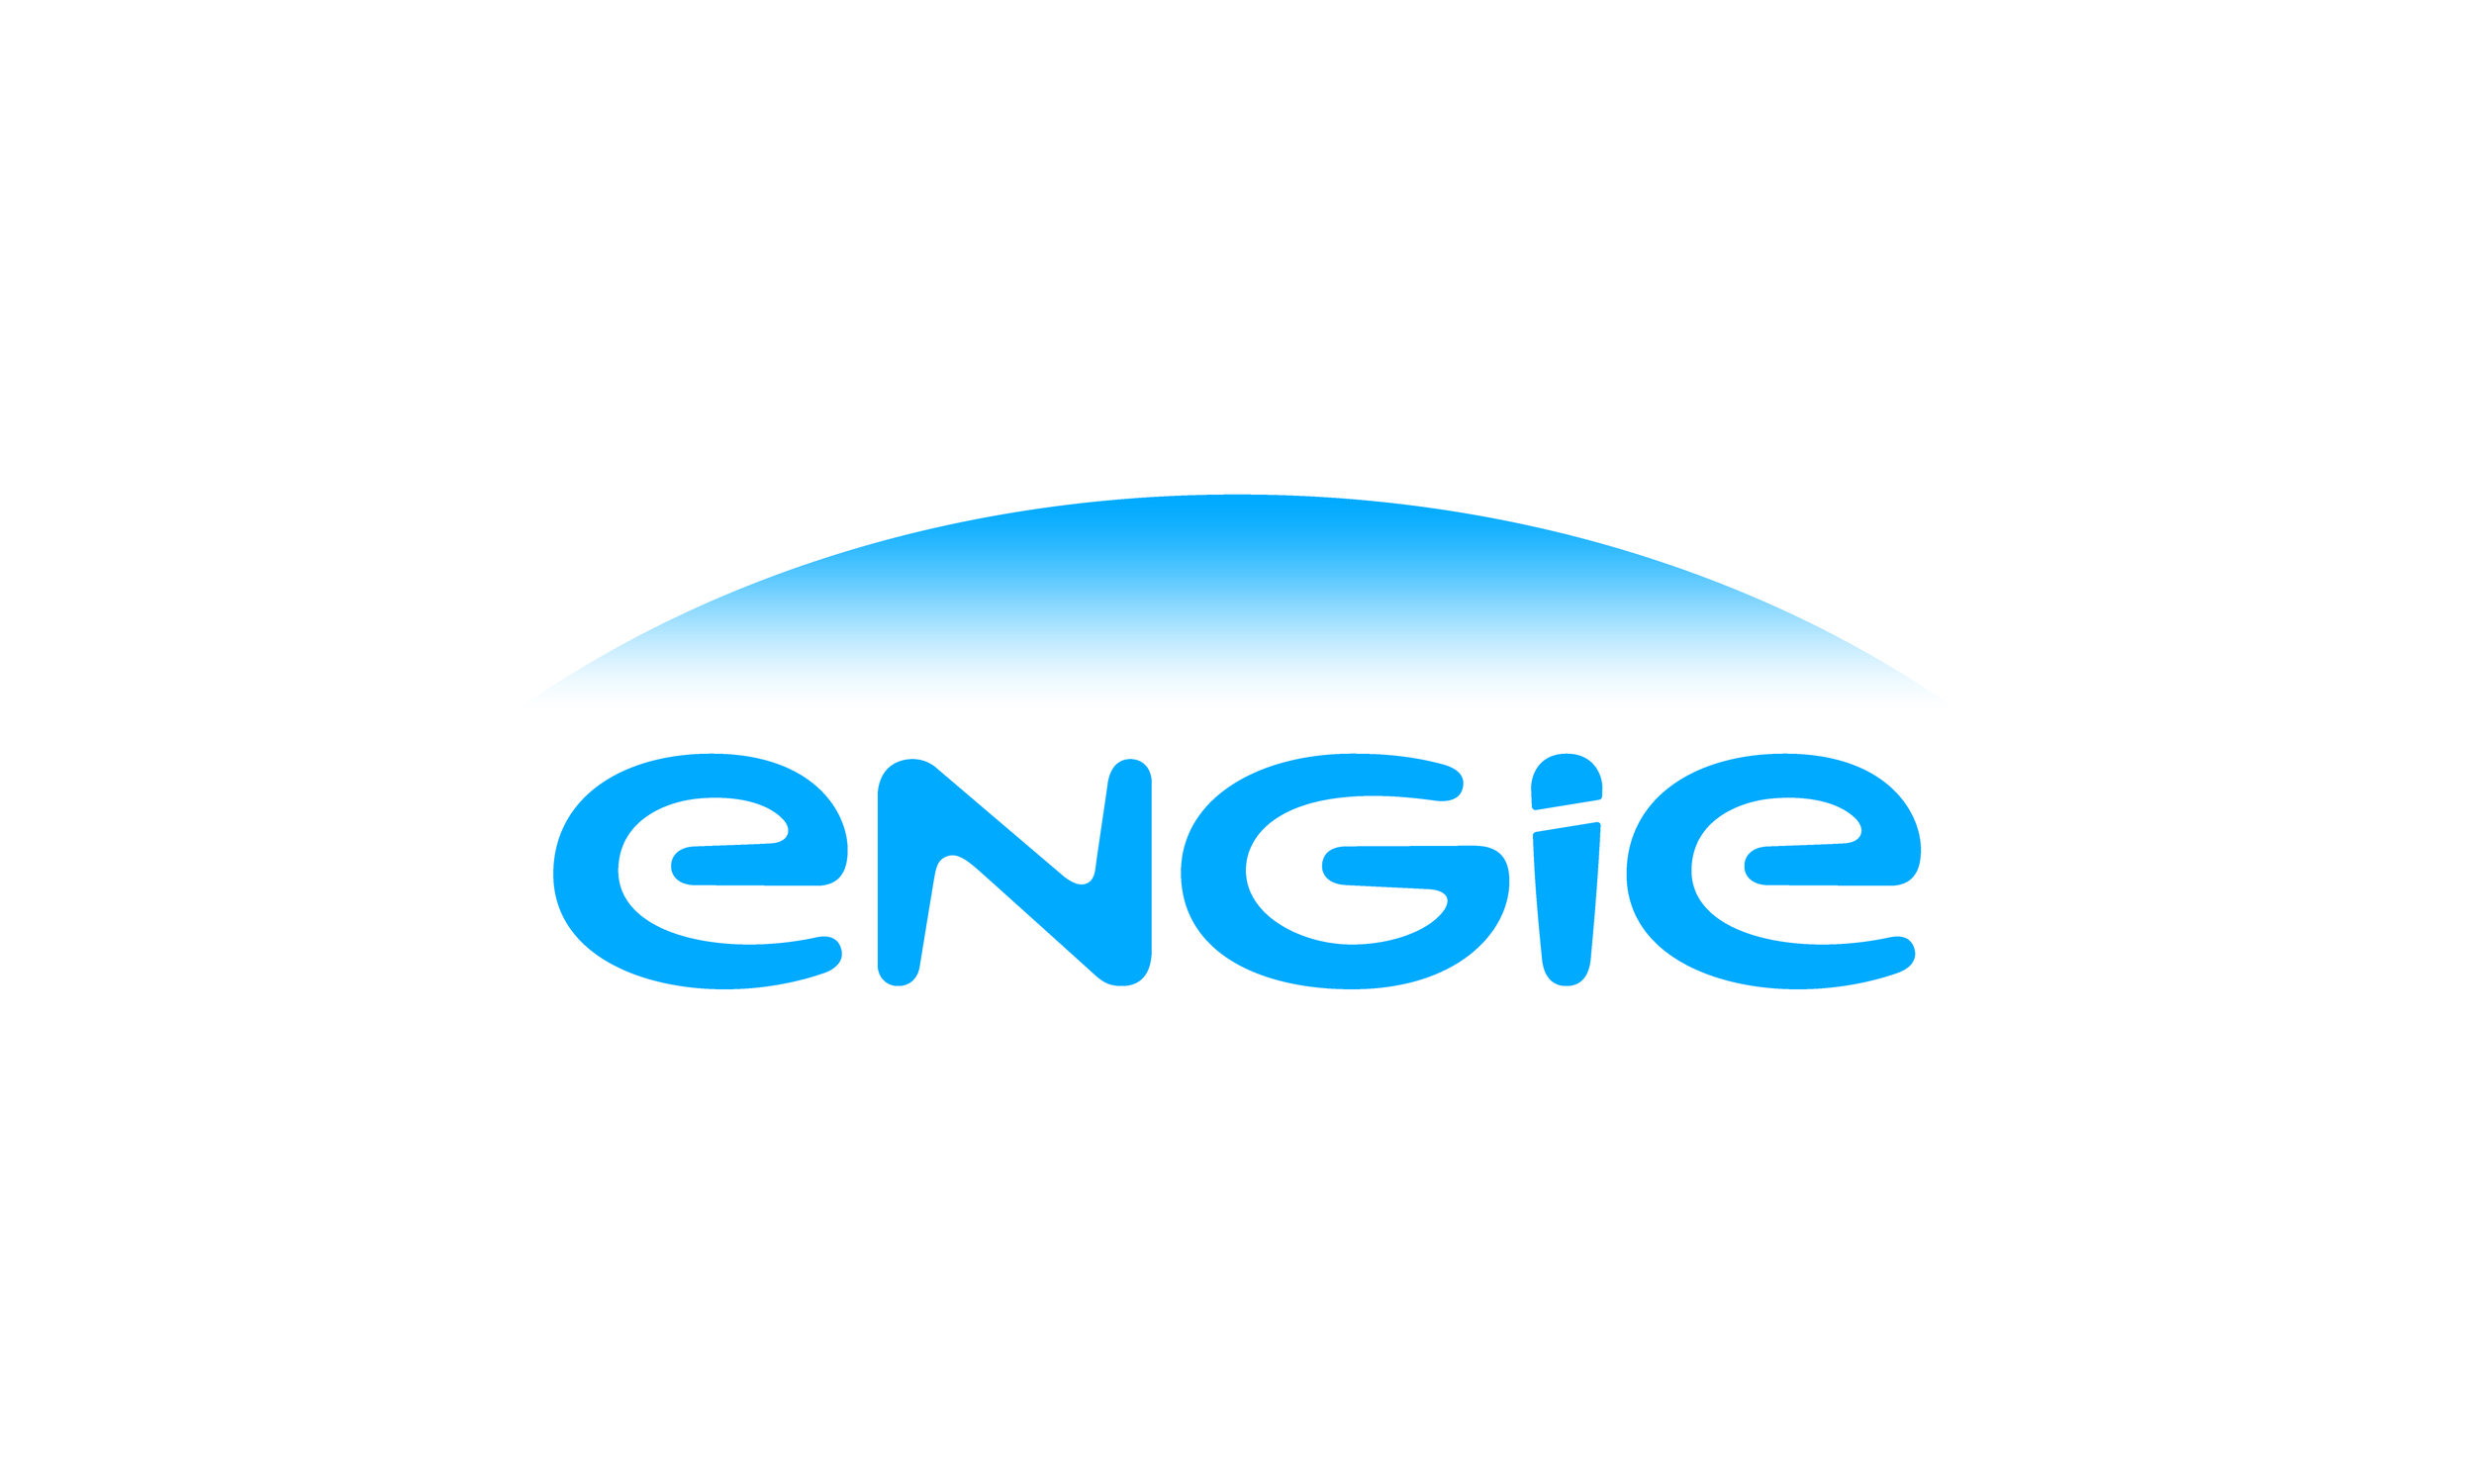 ENGIE_logotype_gradient_BLUE_RGB.jpg